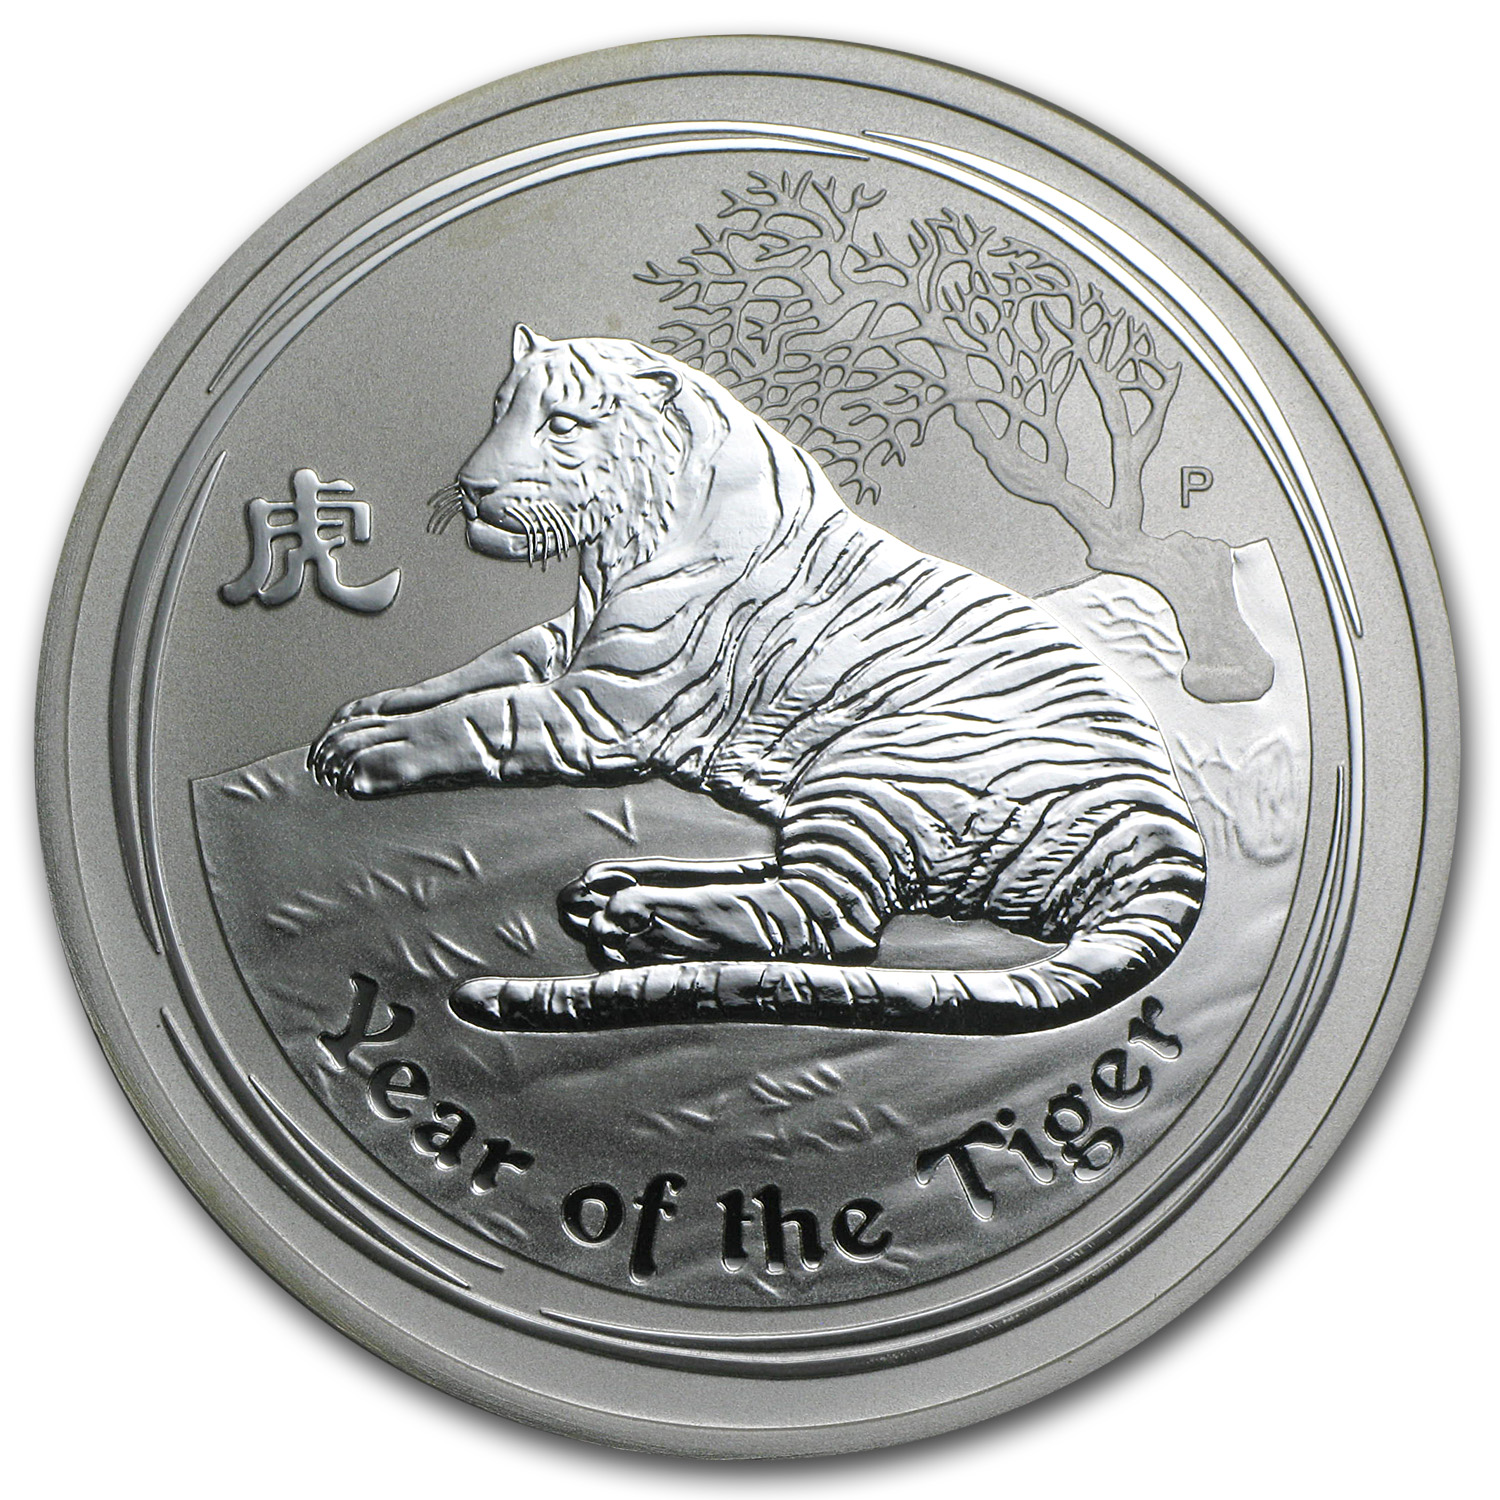 2010 2 oz Silver Australian Year of the Tiger Coin SII Abrasions